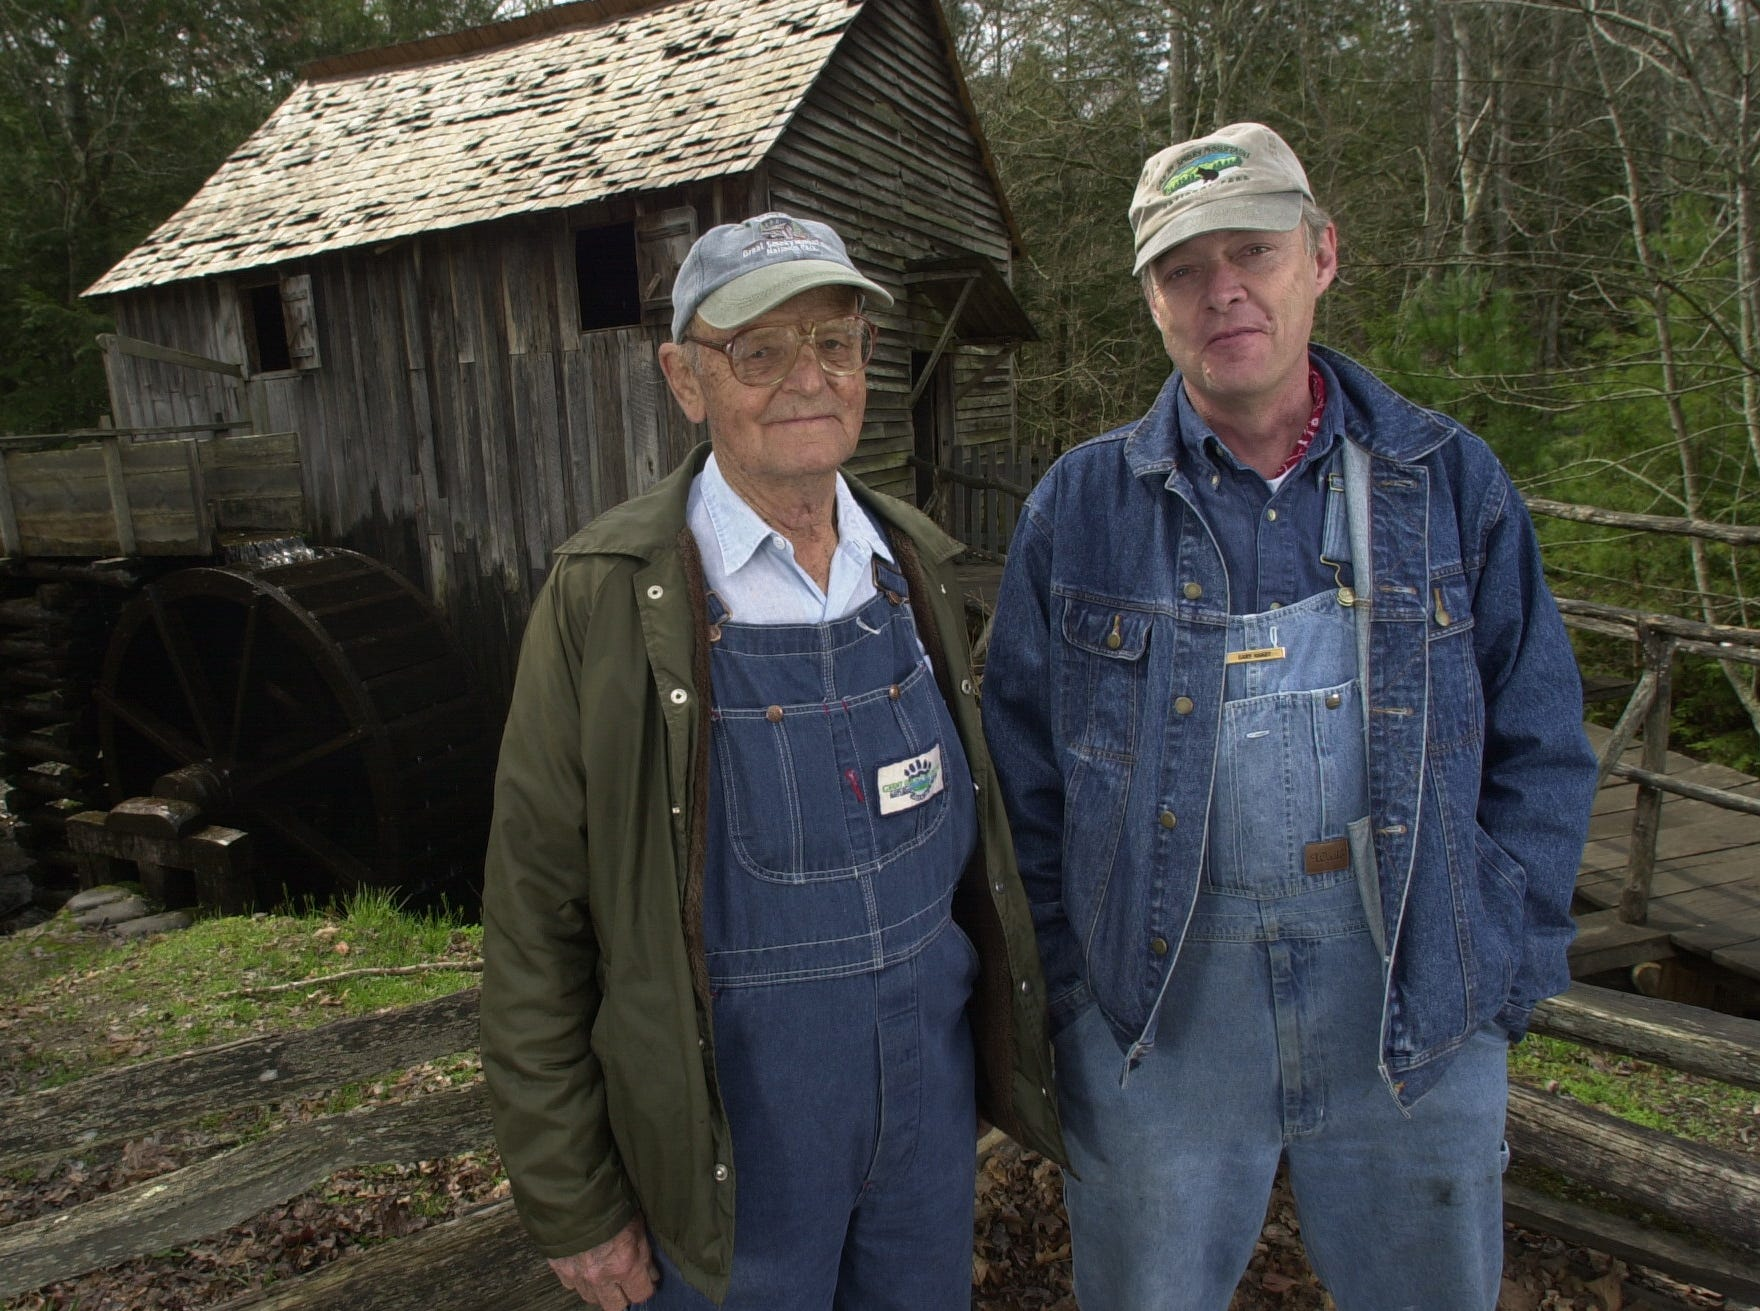 Cable Mill operators Hubert Sullivan, left, and Gary Haaby in Cades Cove in the Great Smoky Mountains National Park.  2003.